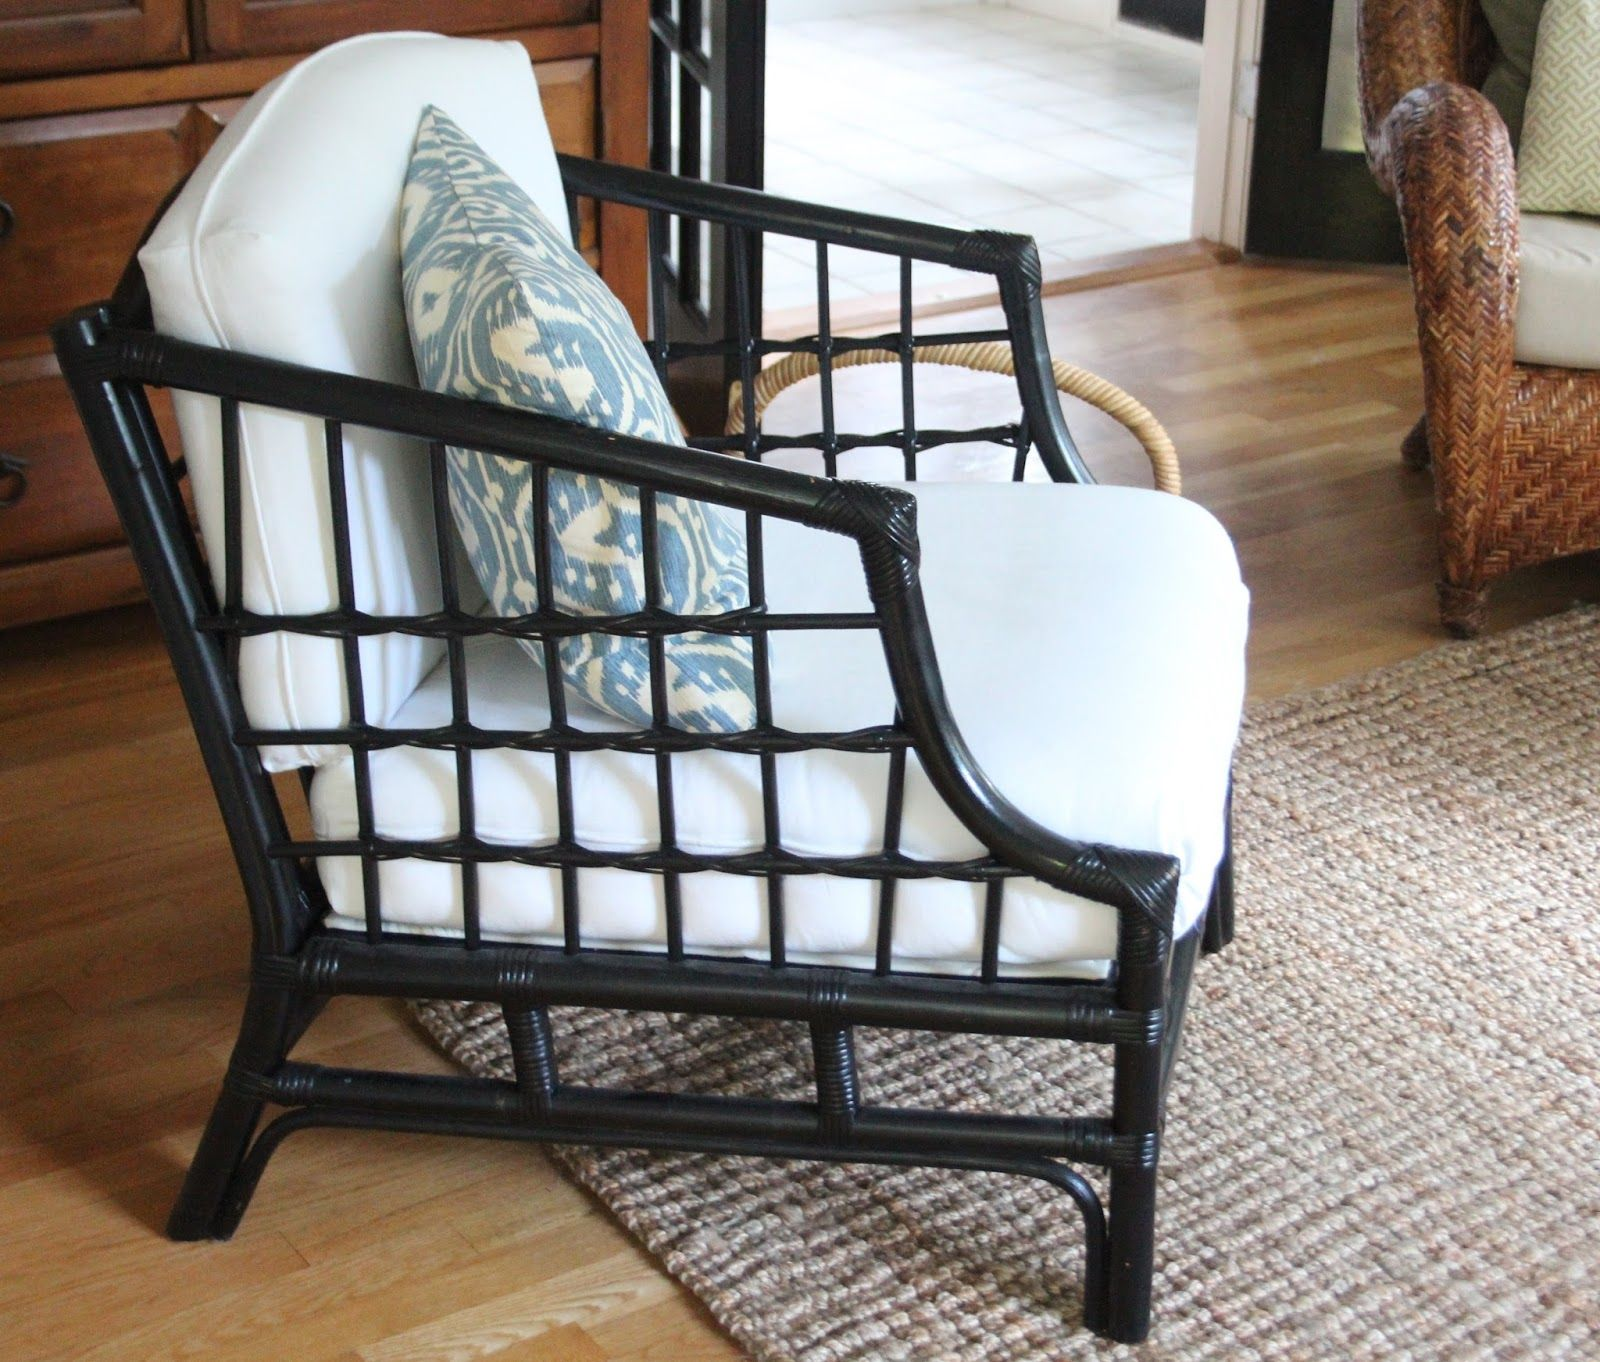 The Bamboo Chair Makeover